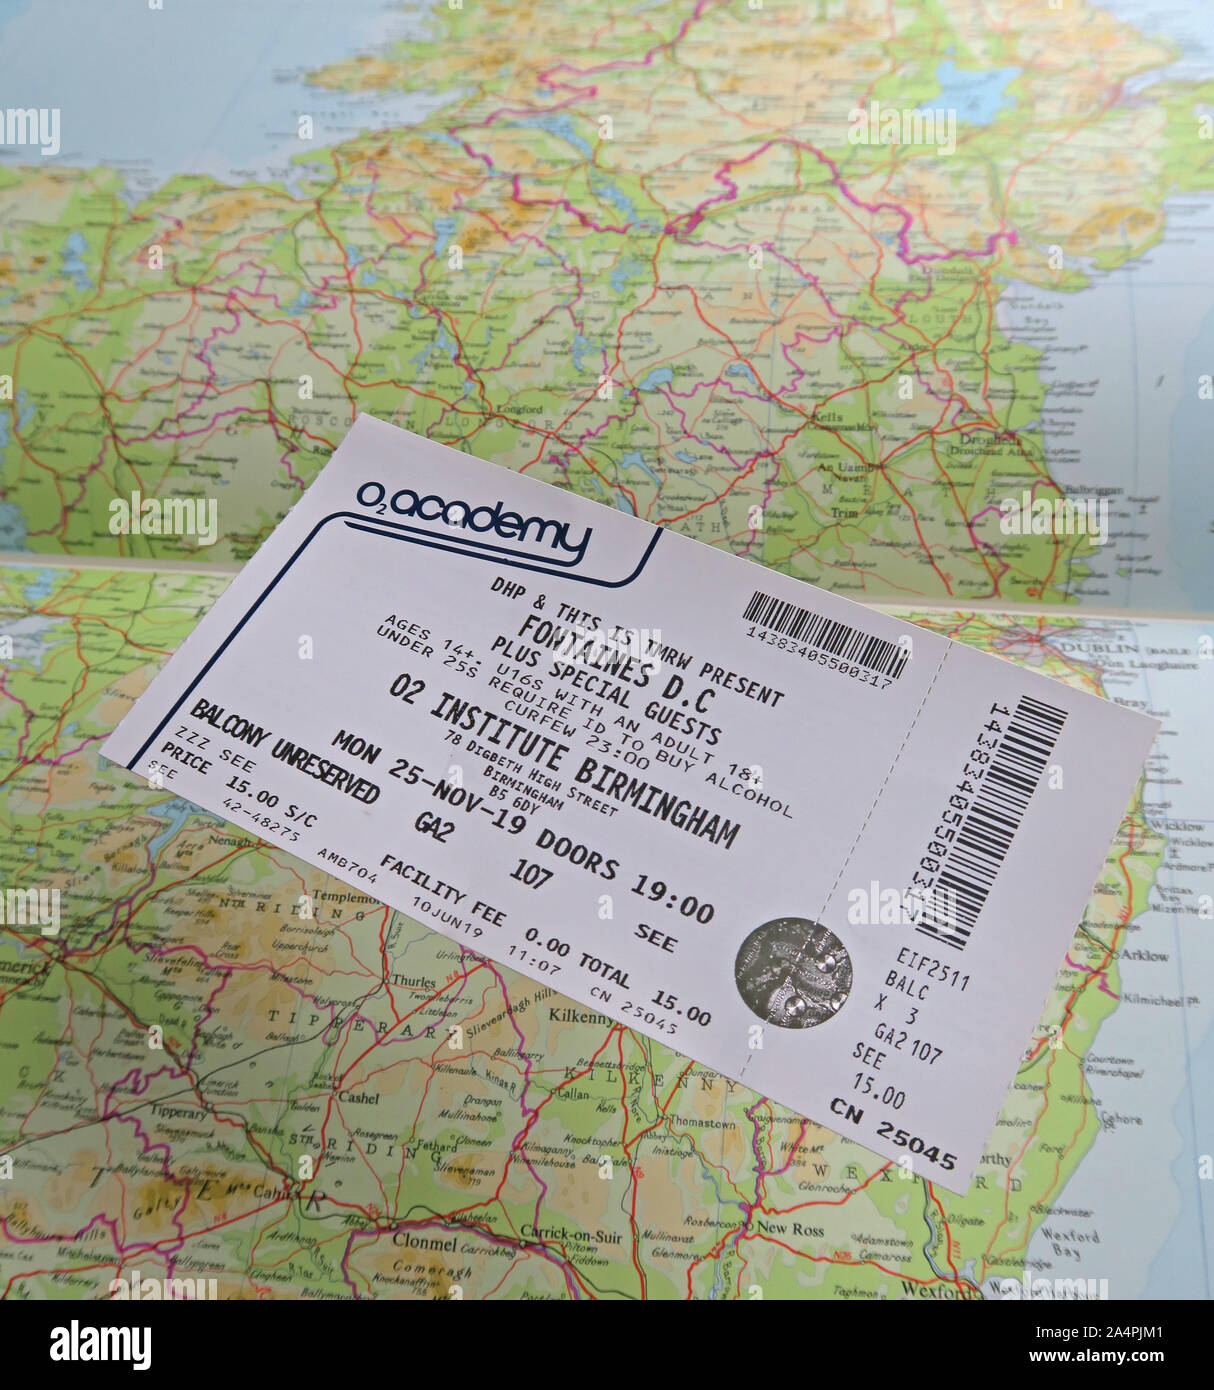 @HotpixUK,HotpixUK,GoTonySmith,post-punk rock band,Dublin,Ireland,ticket,Birmingham O2 Institute,Digbeth High St,25-Nov-2019,O2,Birmingham Instritute,gig,show,tour 2019 tour,postpunk,rock,band,Dublin Ireland,O2 Institute,Digbeth,music,tour,map,Academy,balcony,unreserved,Dublin City,Fontaines D.C. Tour,Fontaines DC Tour,Carlos OConnell,Conor Curley,Conor Deegan,Grian Chatten,Tom Coll